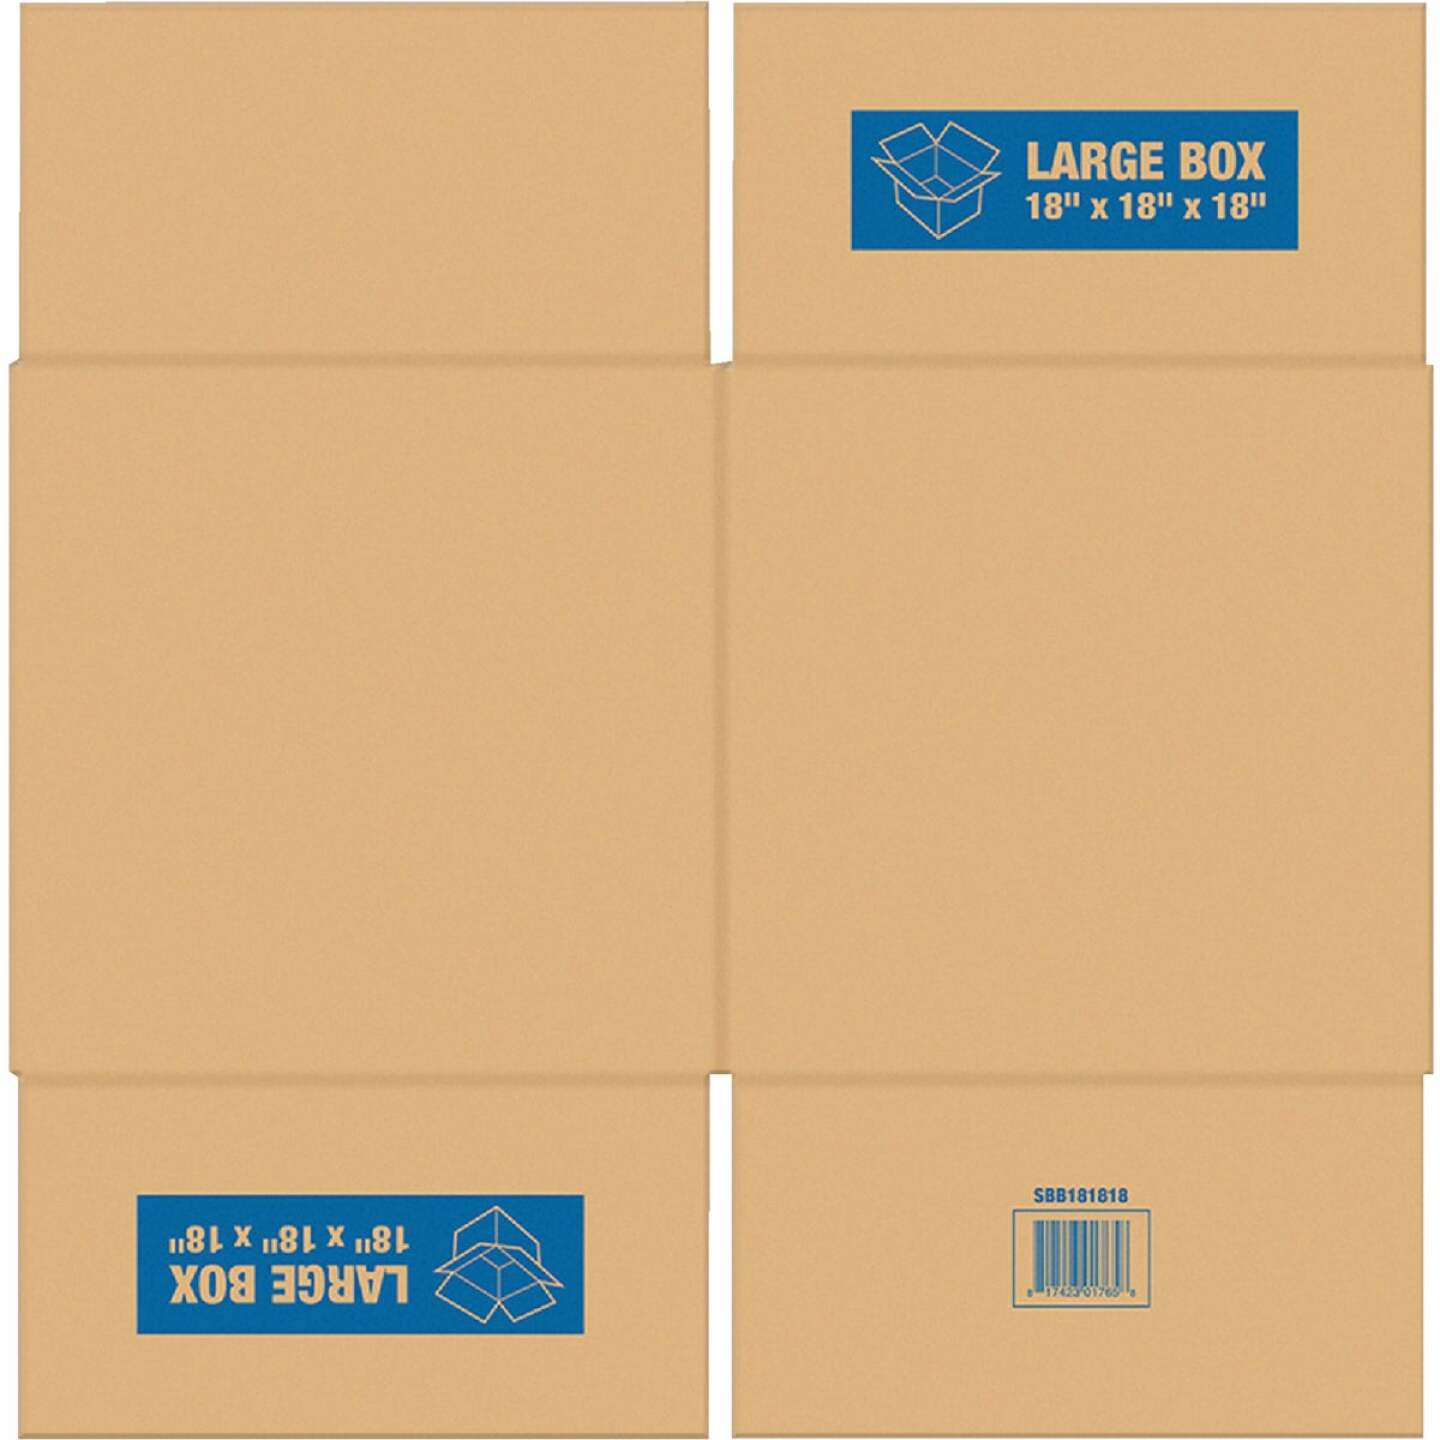 Square Built Large Moving Box Image 1